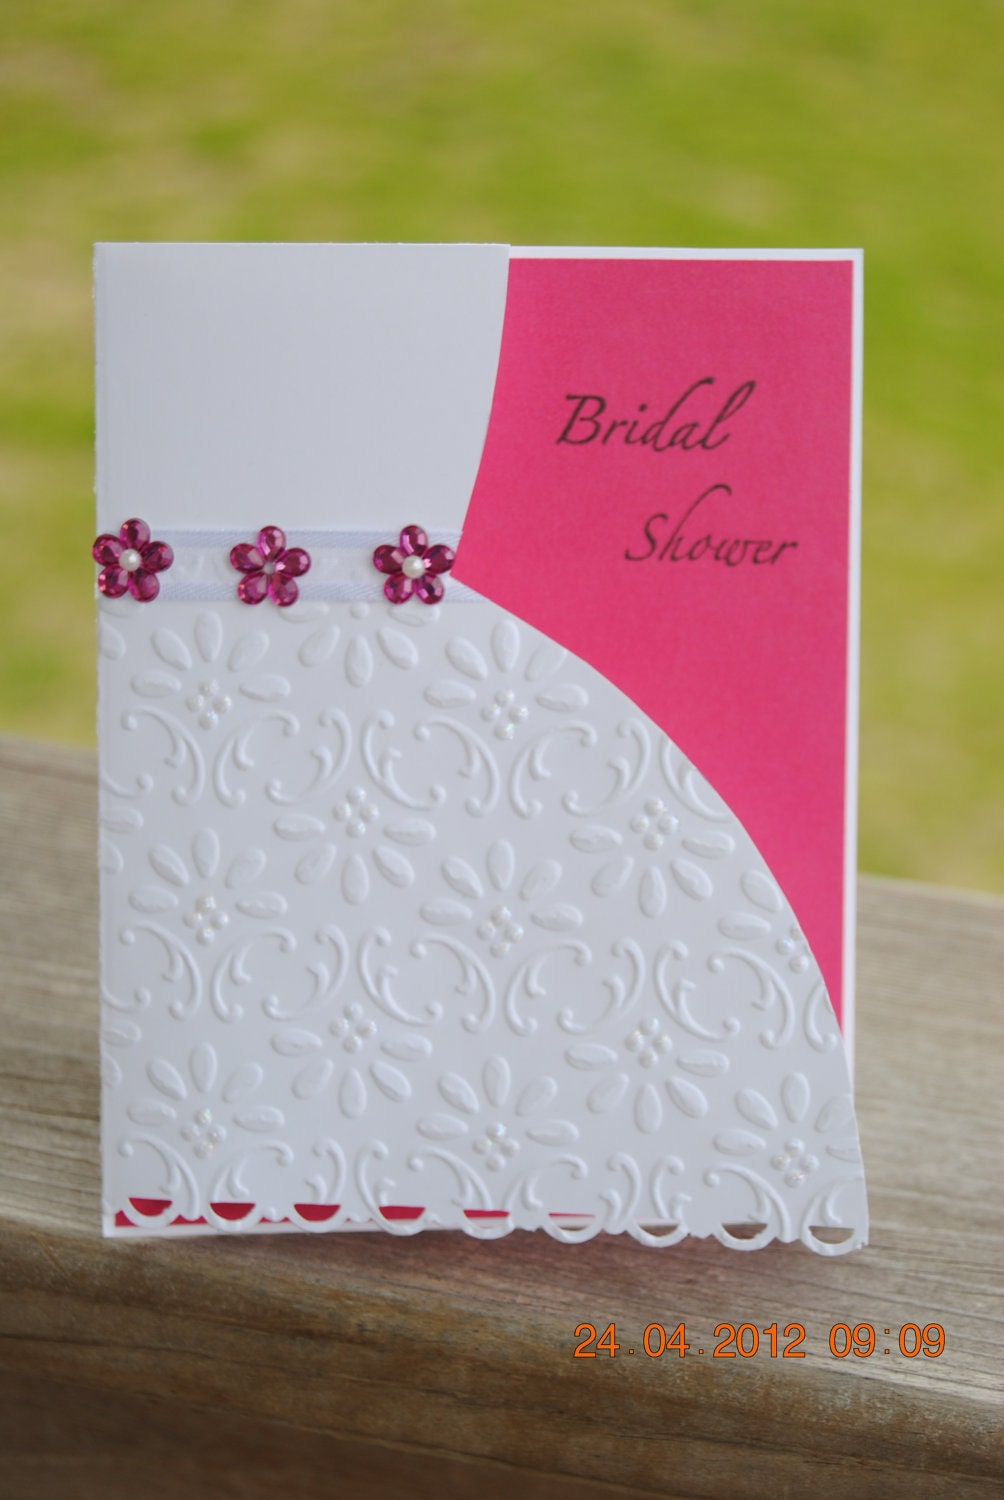 Handcrafted Embossed Bridal Shower Card Invitation